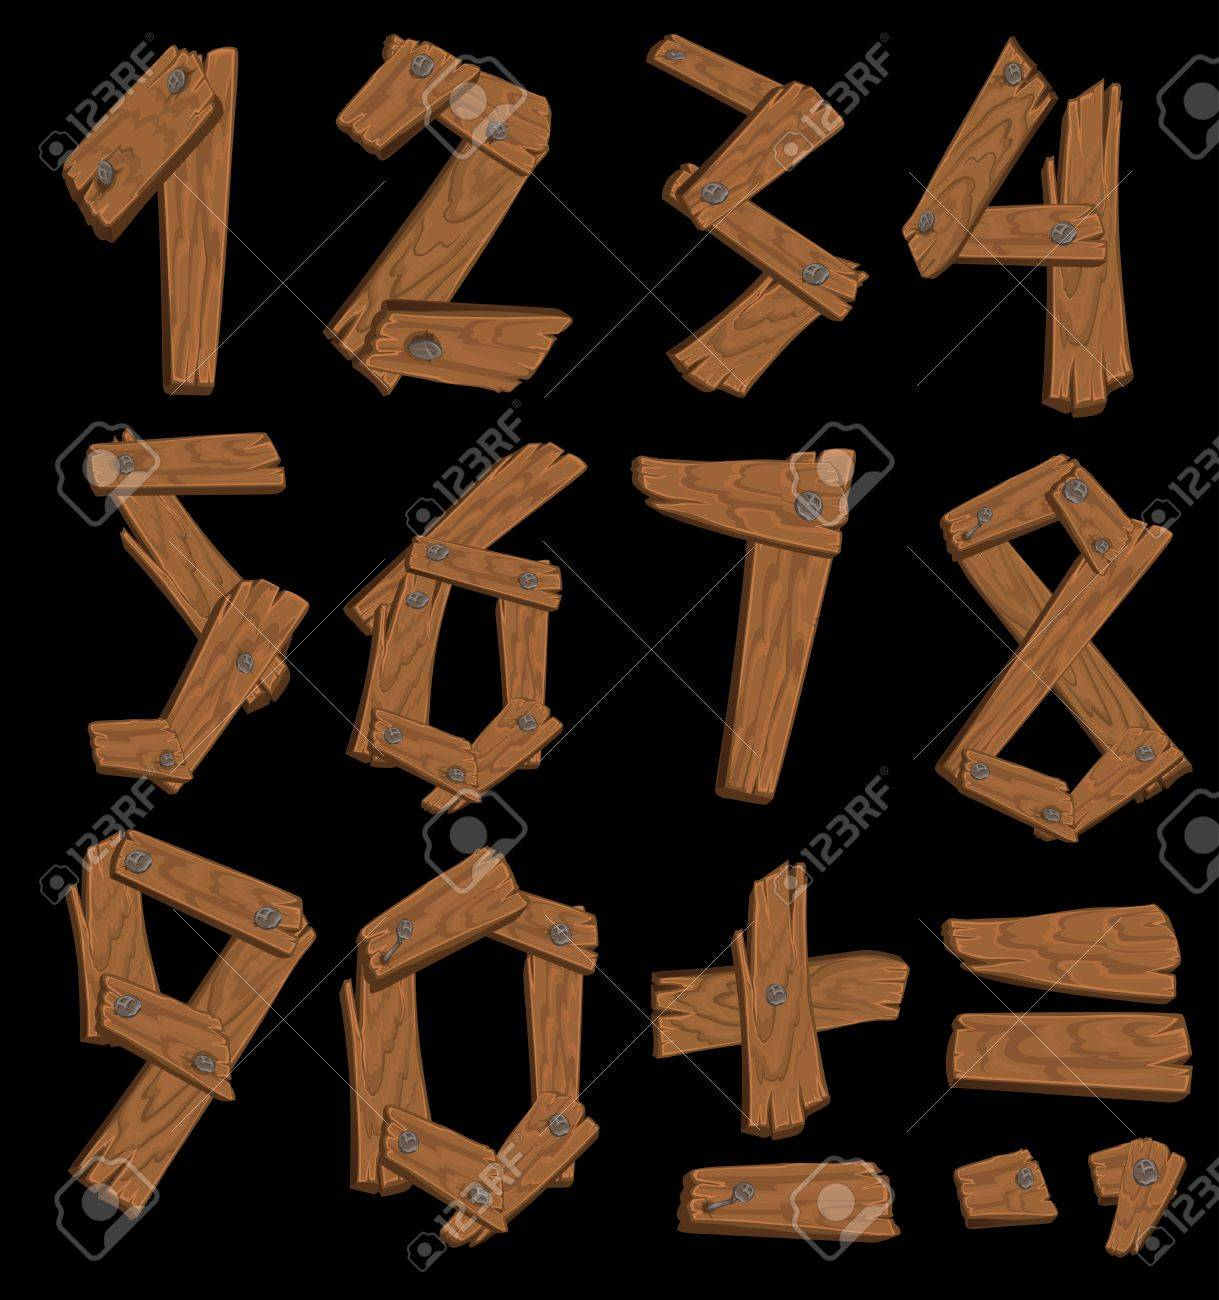 The figures made of wood held together with nails on black background Stock Vector - 15660798